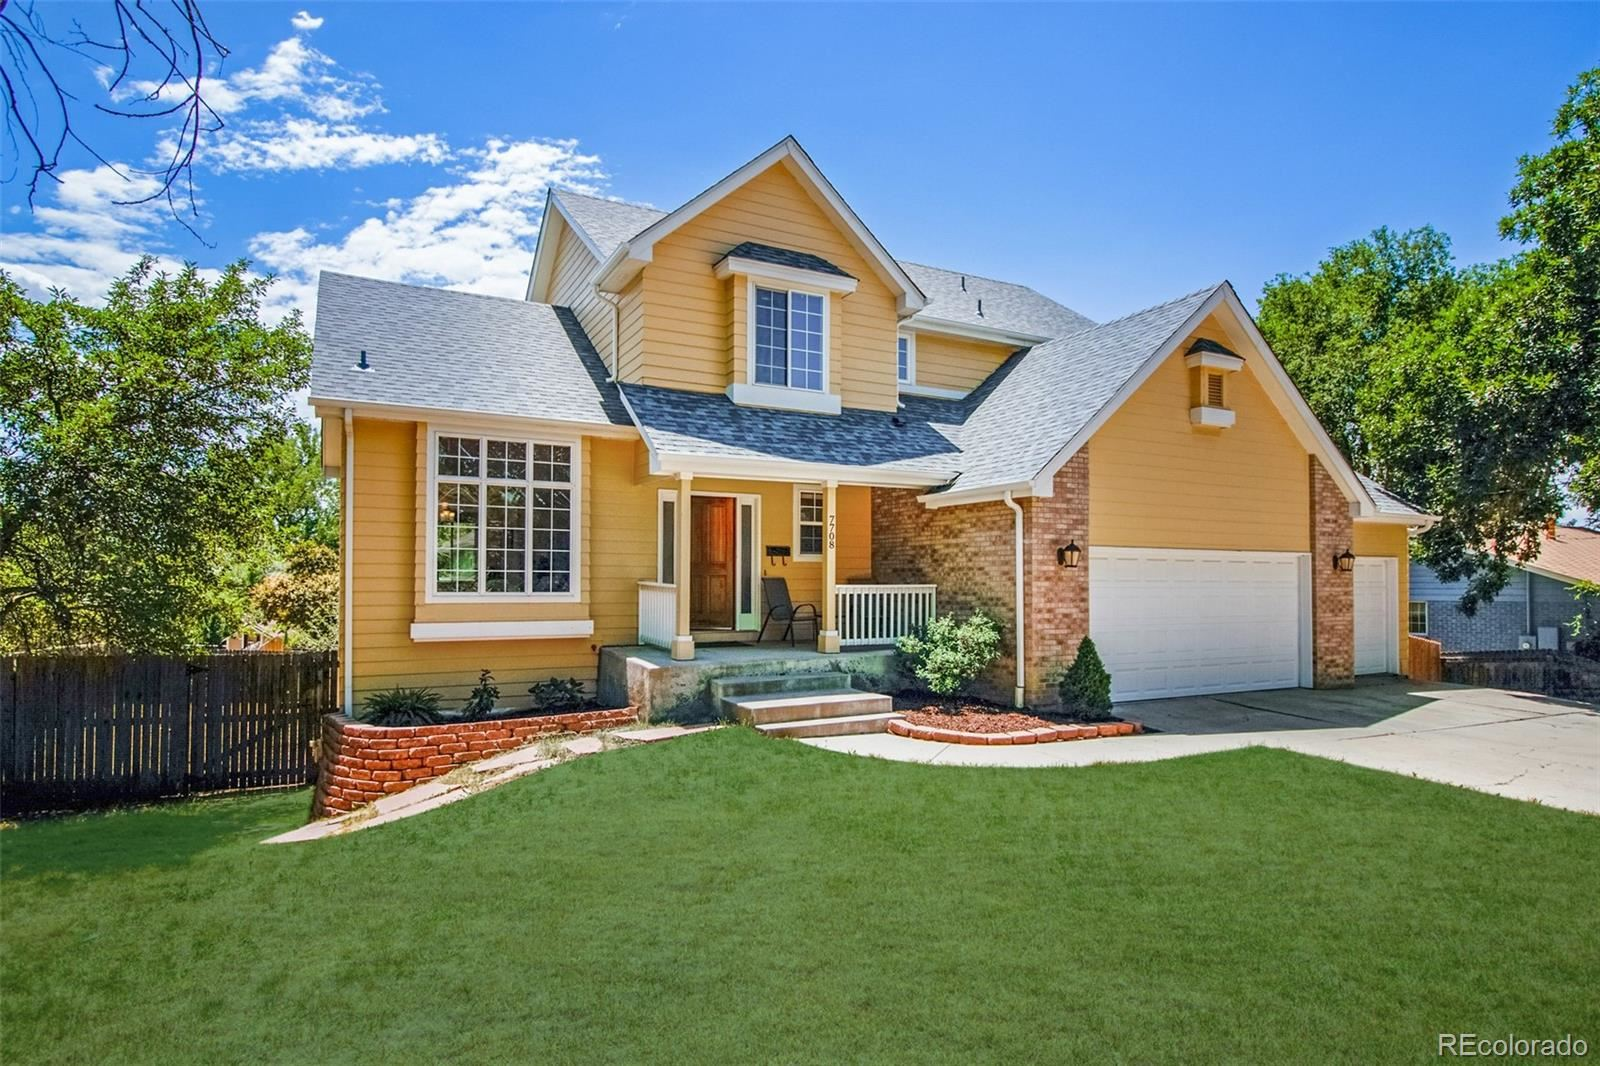 7708 W 62nd Place, Arvada, CO 80004 - #: 2749525